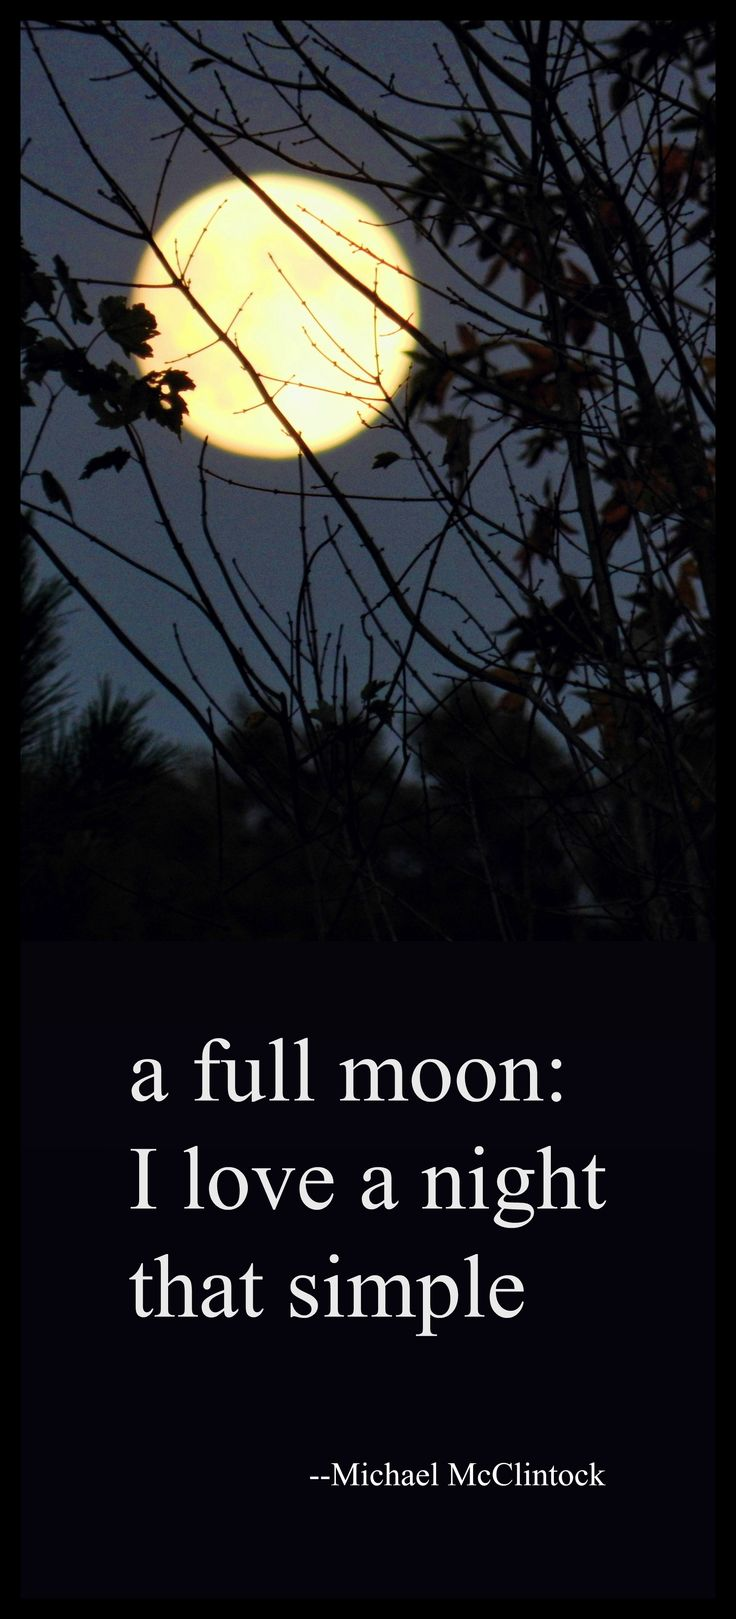 a full moon: I love a night that simple ༺♡༻ Haiku Poem by Michael McClintock